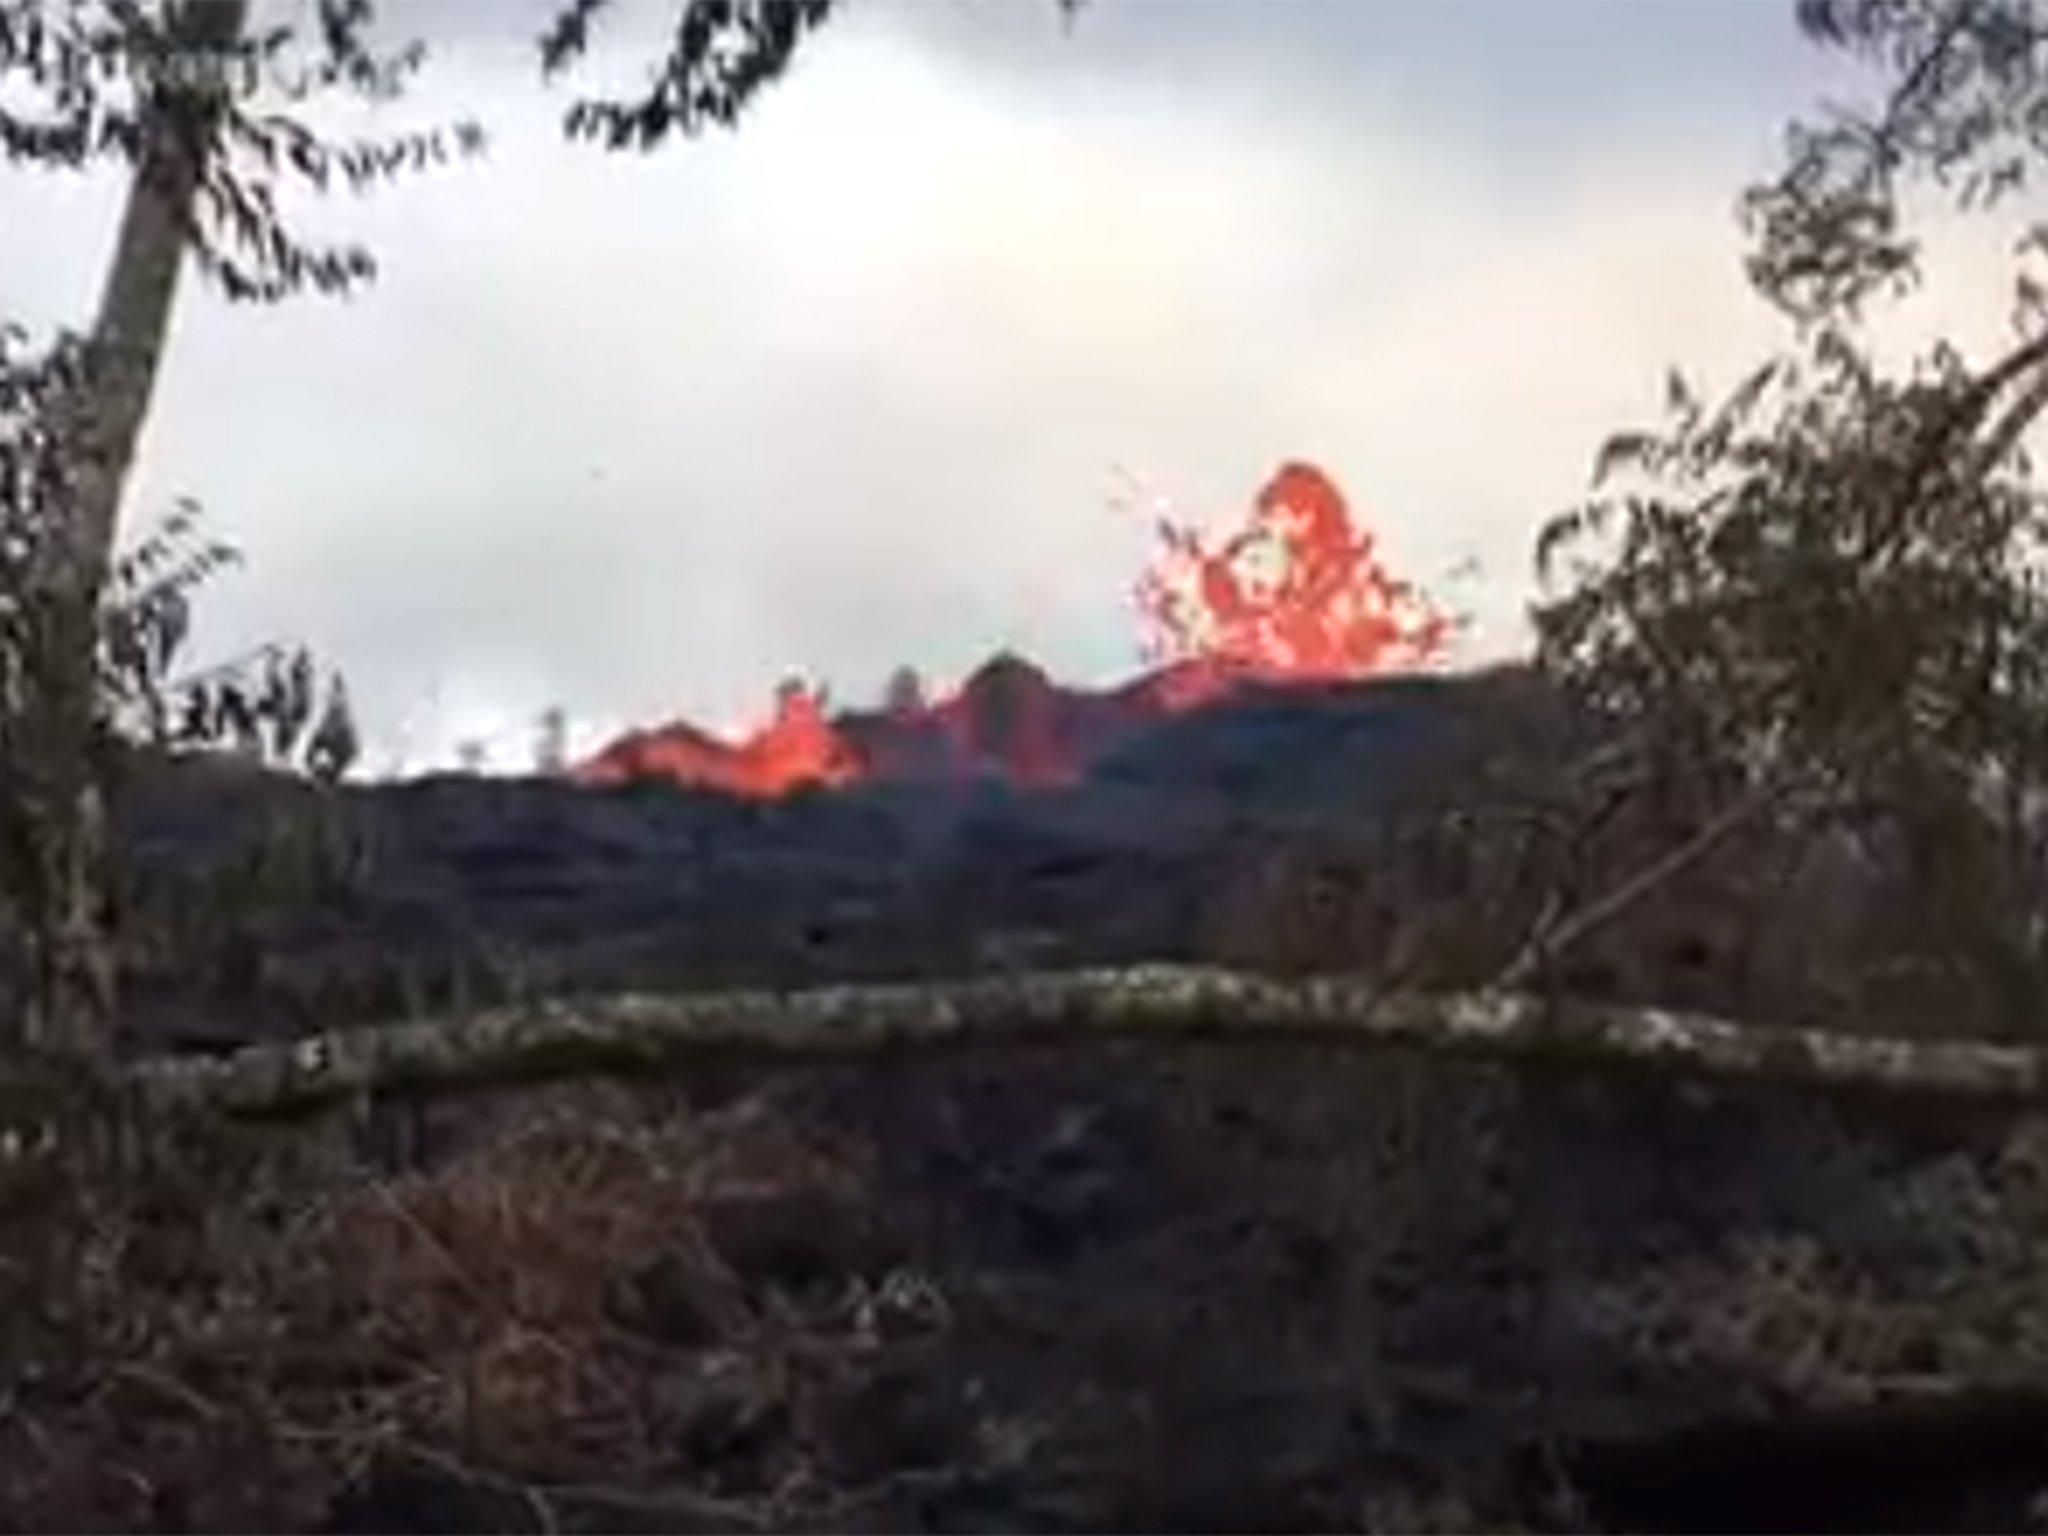 Hawaii volcano latest: Giant new fissure opens, flinging ballistic rock and lava bombs into sky